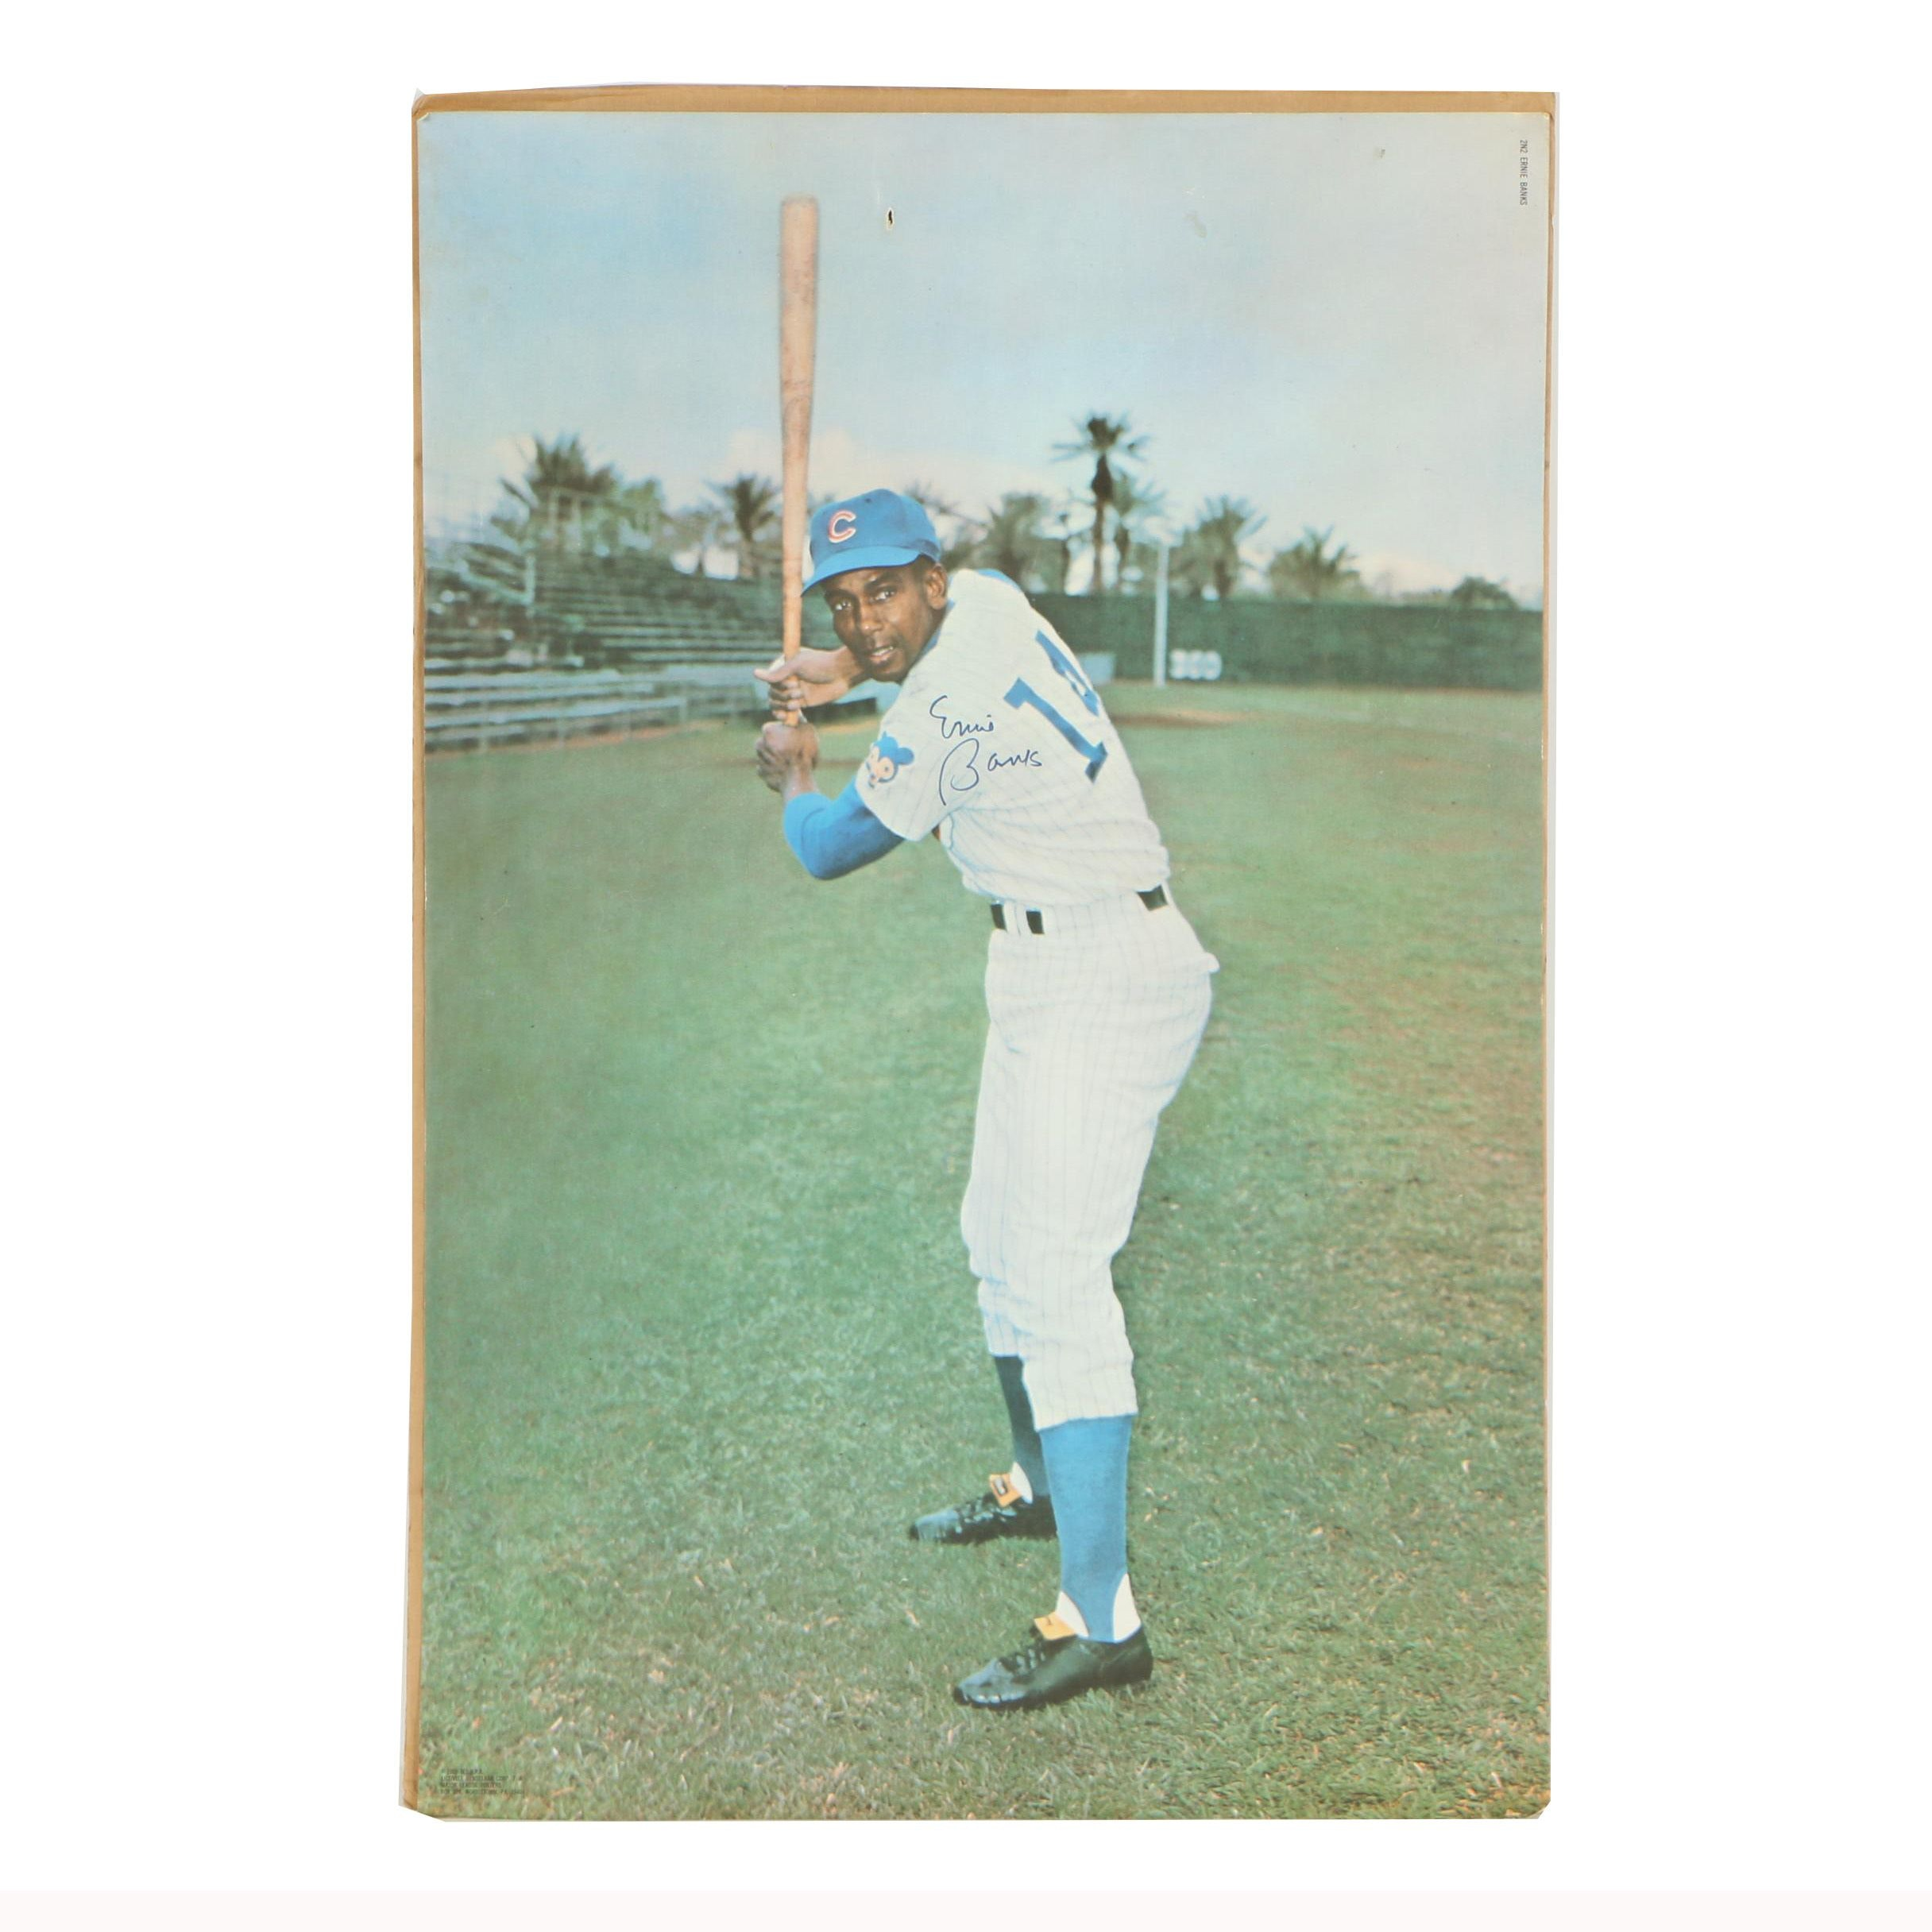 Ernie Banks Autographed Offset Lithograph Poster